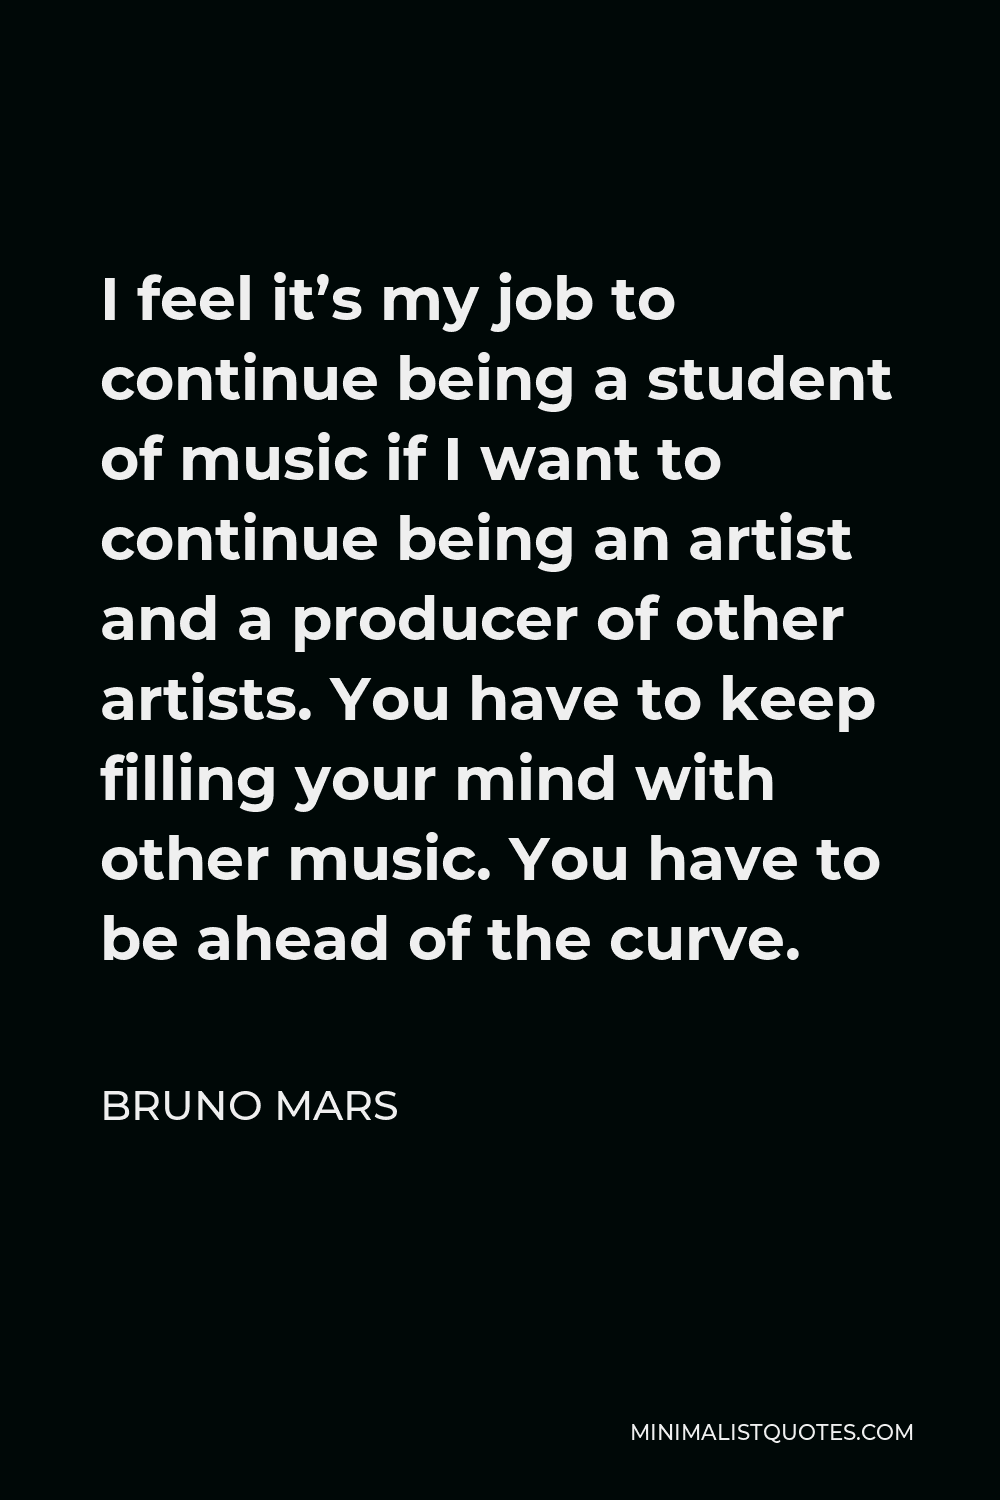 Bruno Mars Quote - I feel it's my job to continue being a student of music if I want to continue being an artist and a producer of other artists. You have to keep filling your mind with other music. You have to be ahead of the curve.